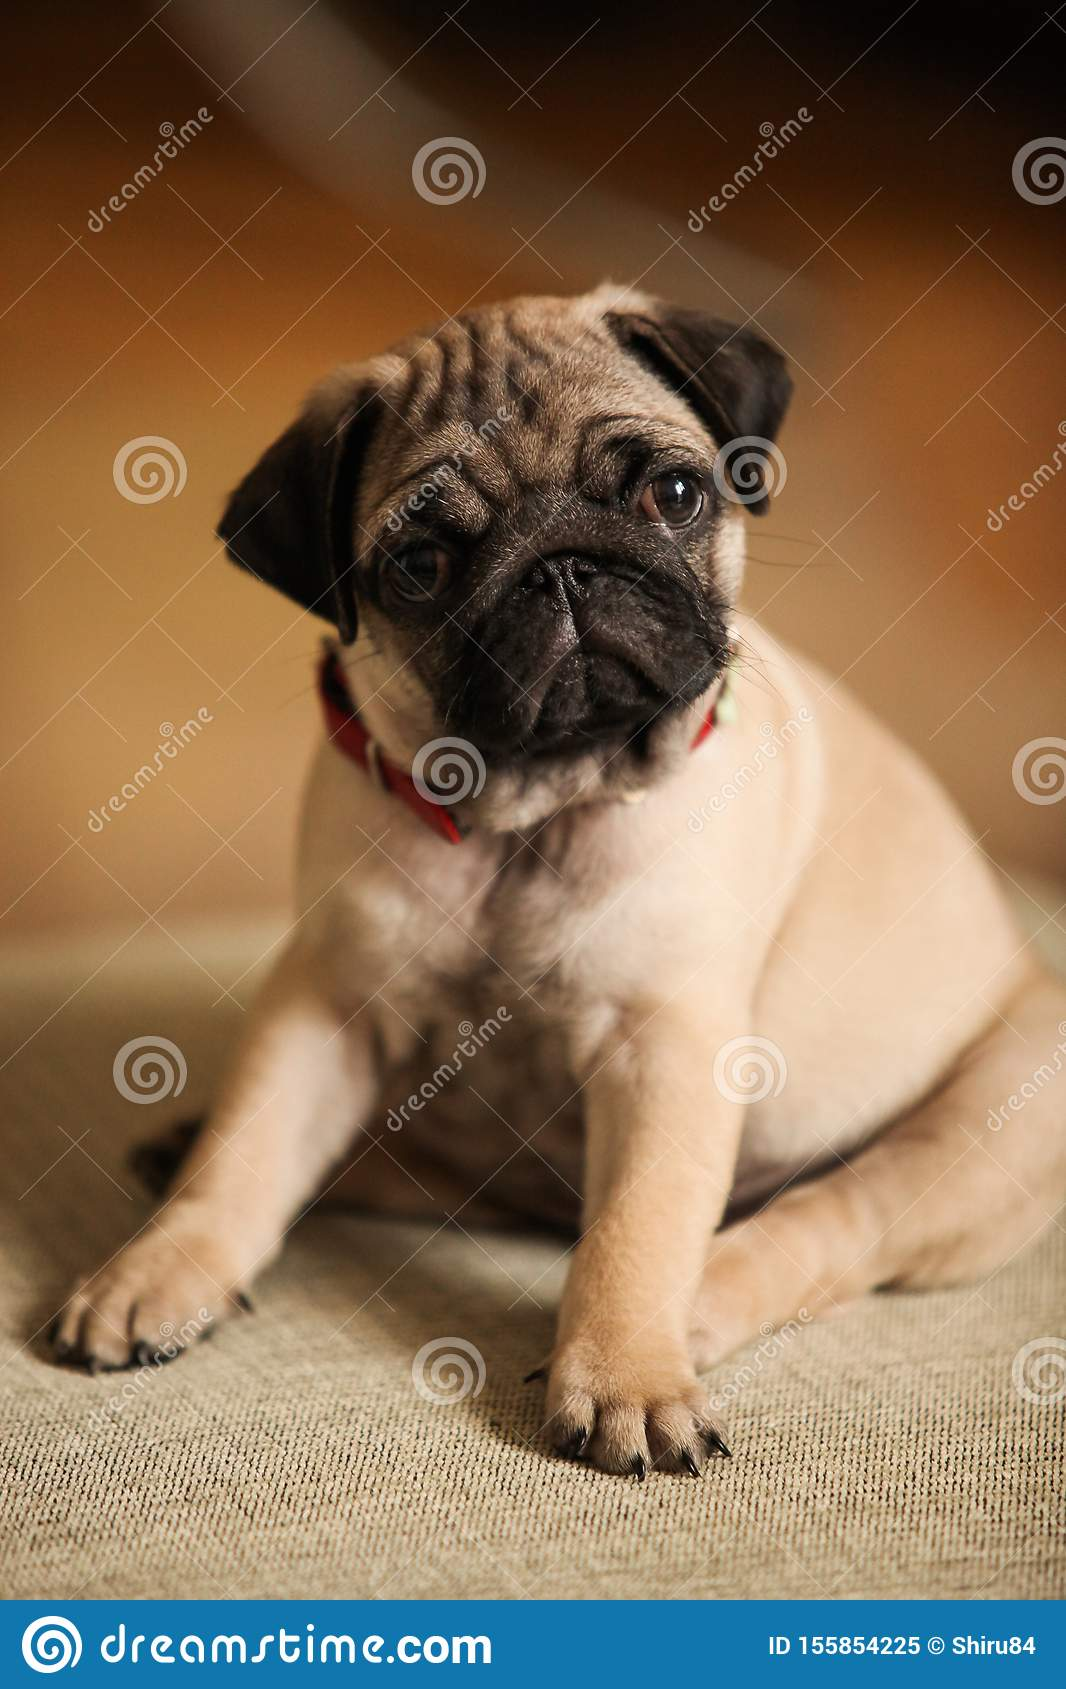 Little, cute pug puppy with red collar portrait.